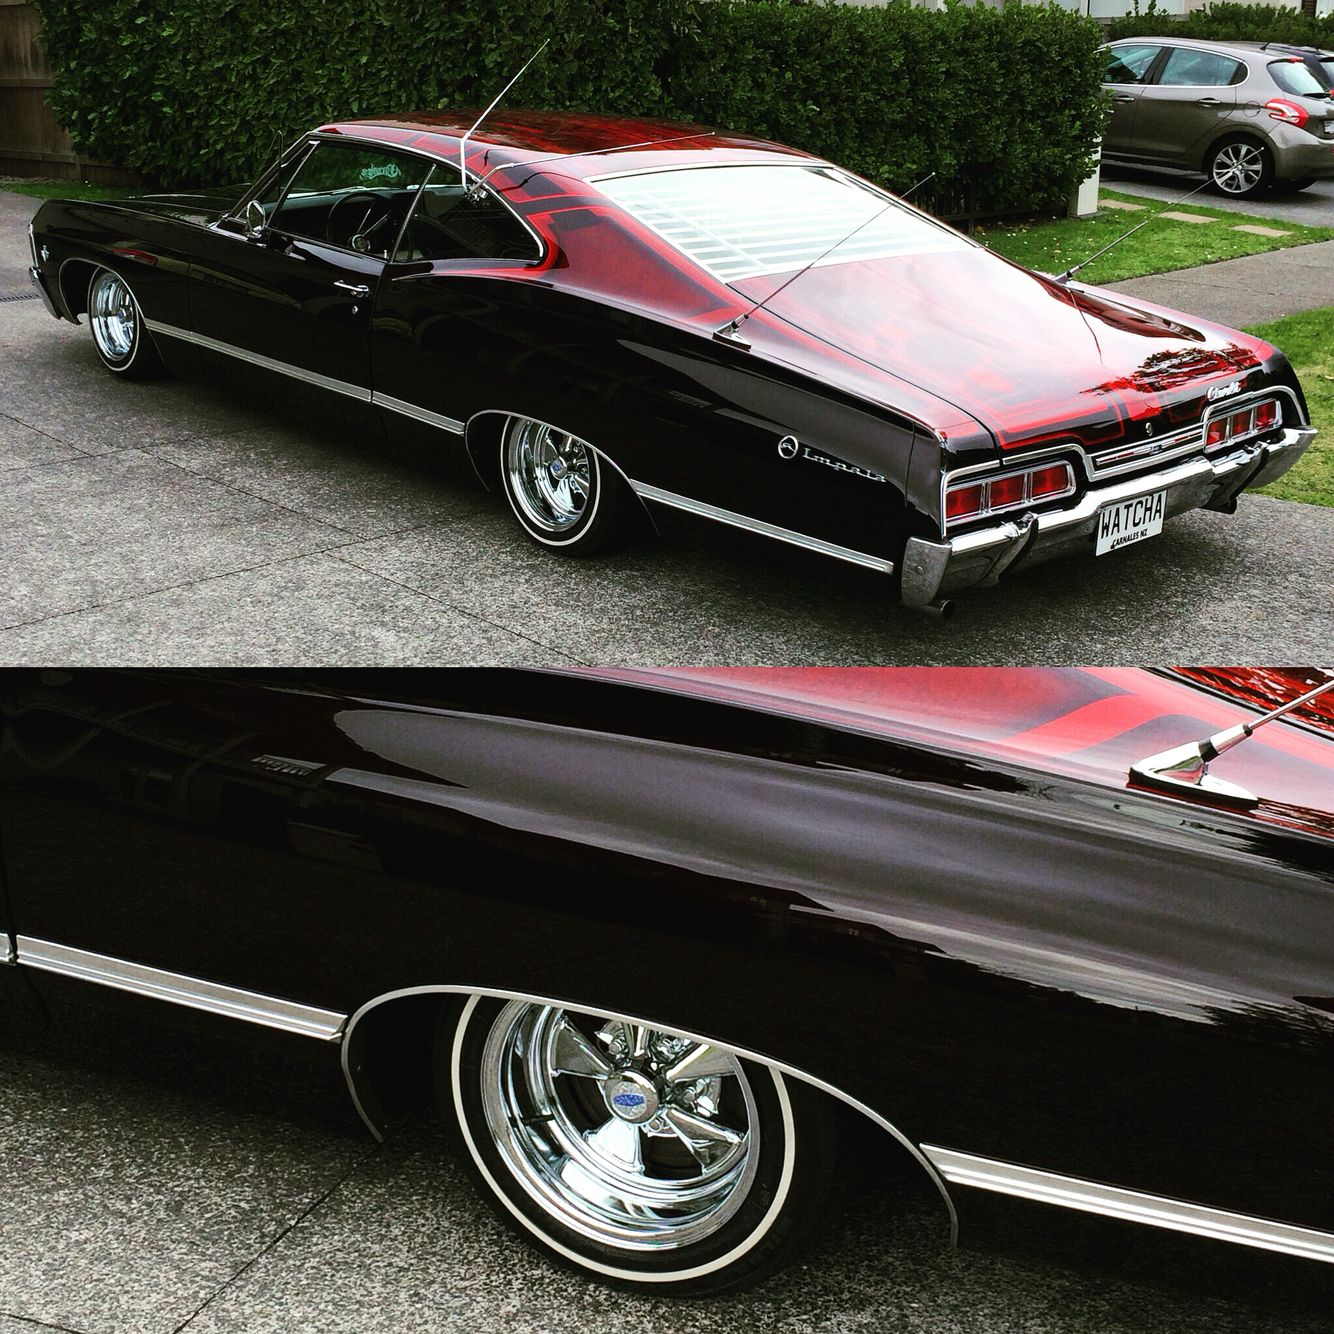 1967 Impala From Carnales New Zealand #cragars #lowrider